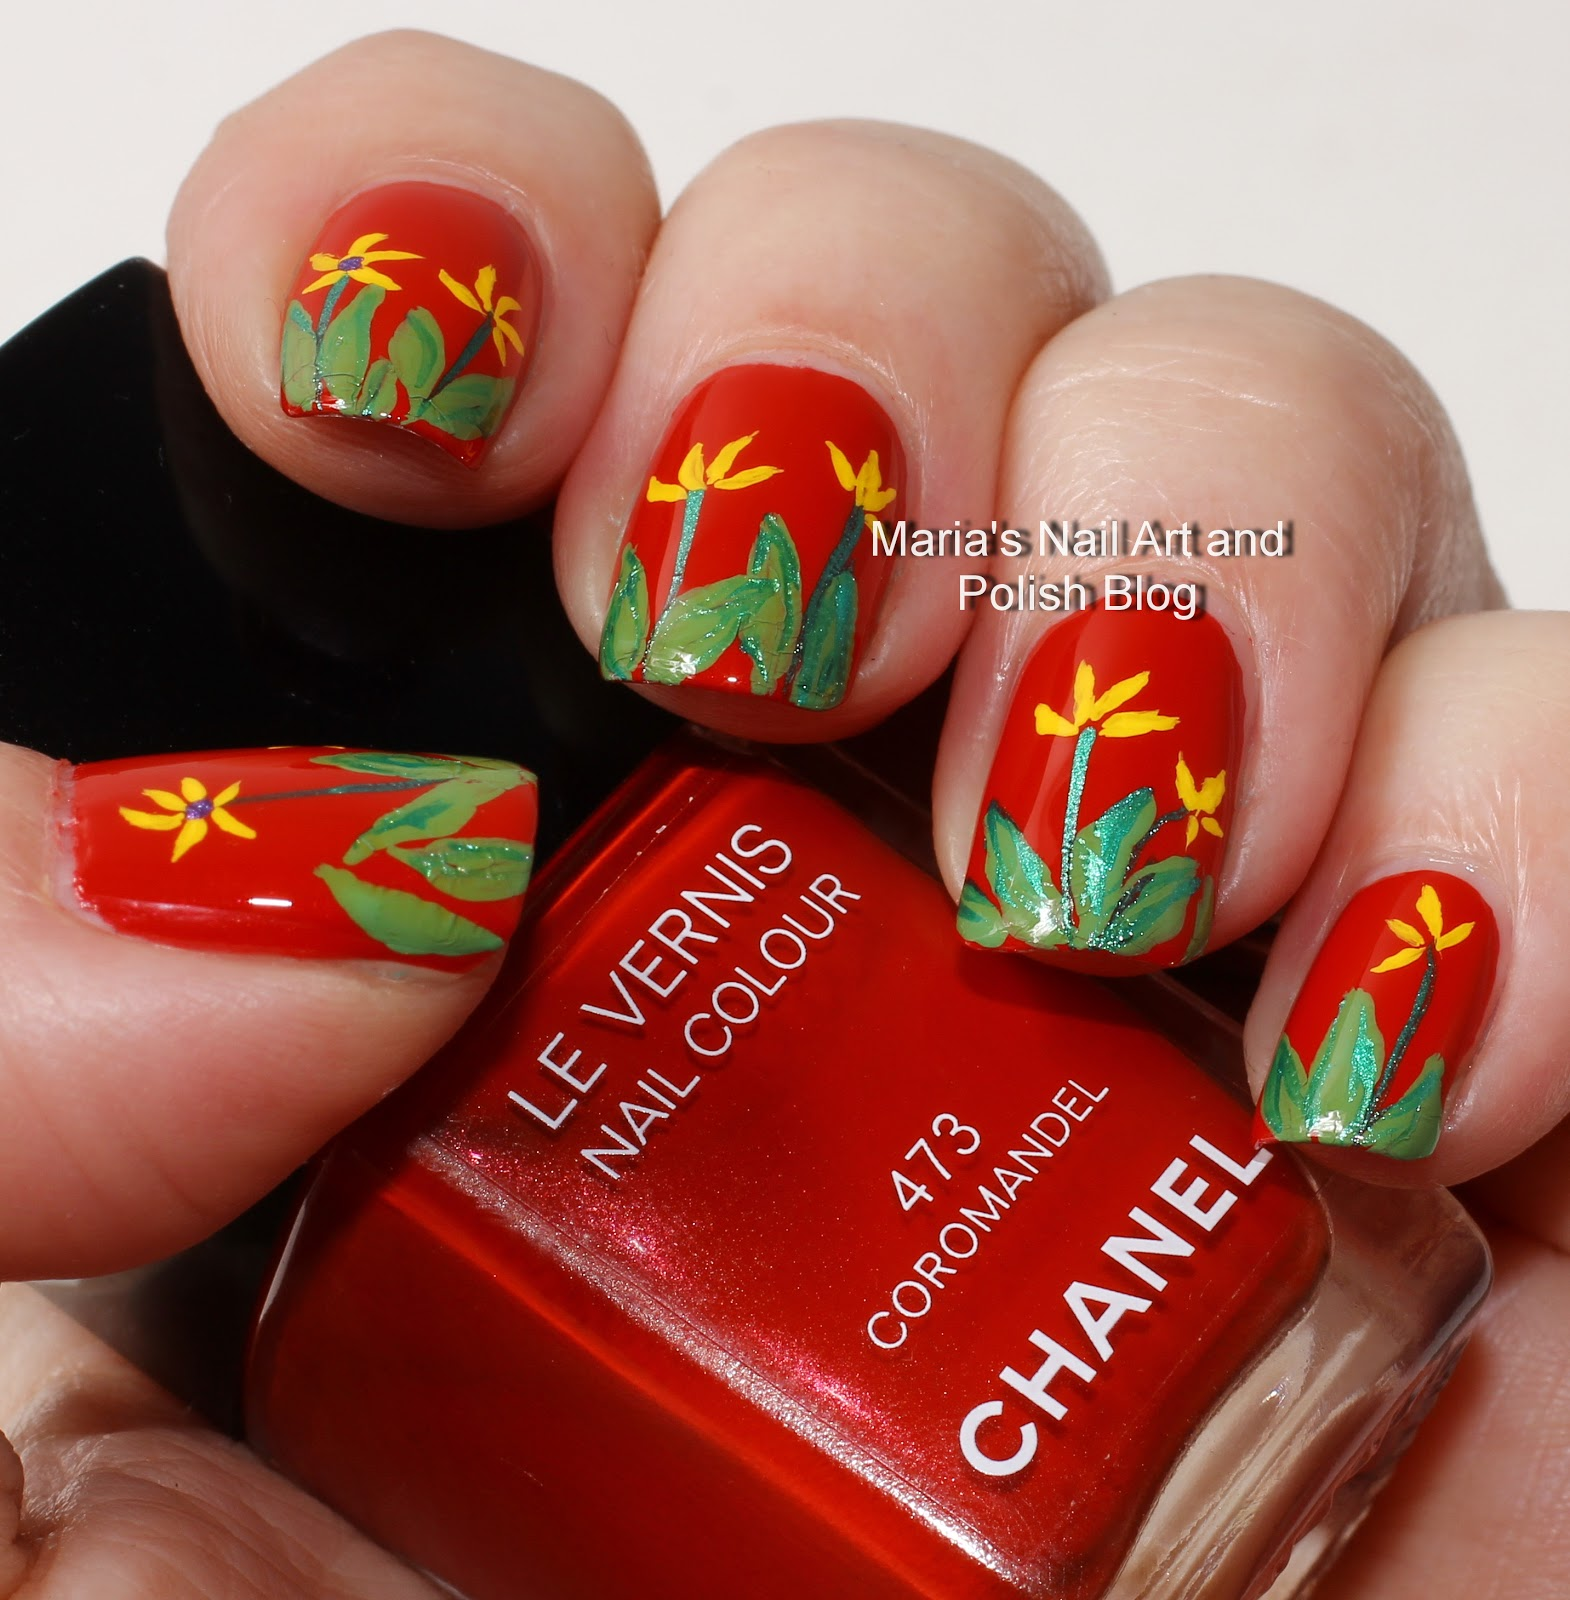 Marias Nail Art And Polish Blog Subtle Floral Nail Art On: Marias Nail Art And Polish Blog: Floral French Coromandel